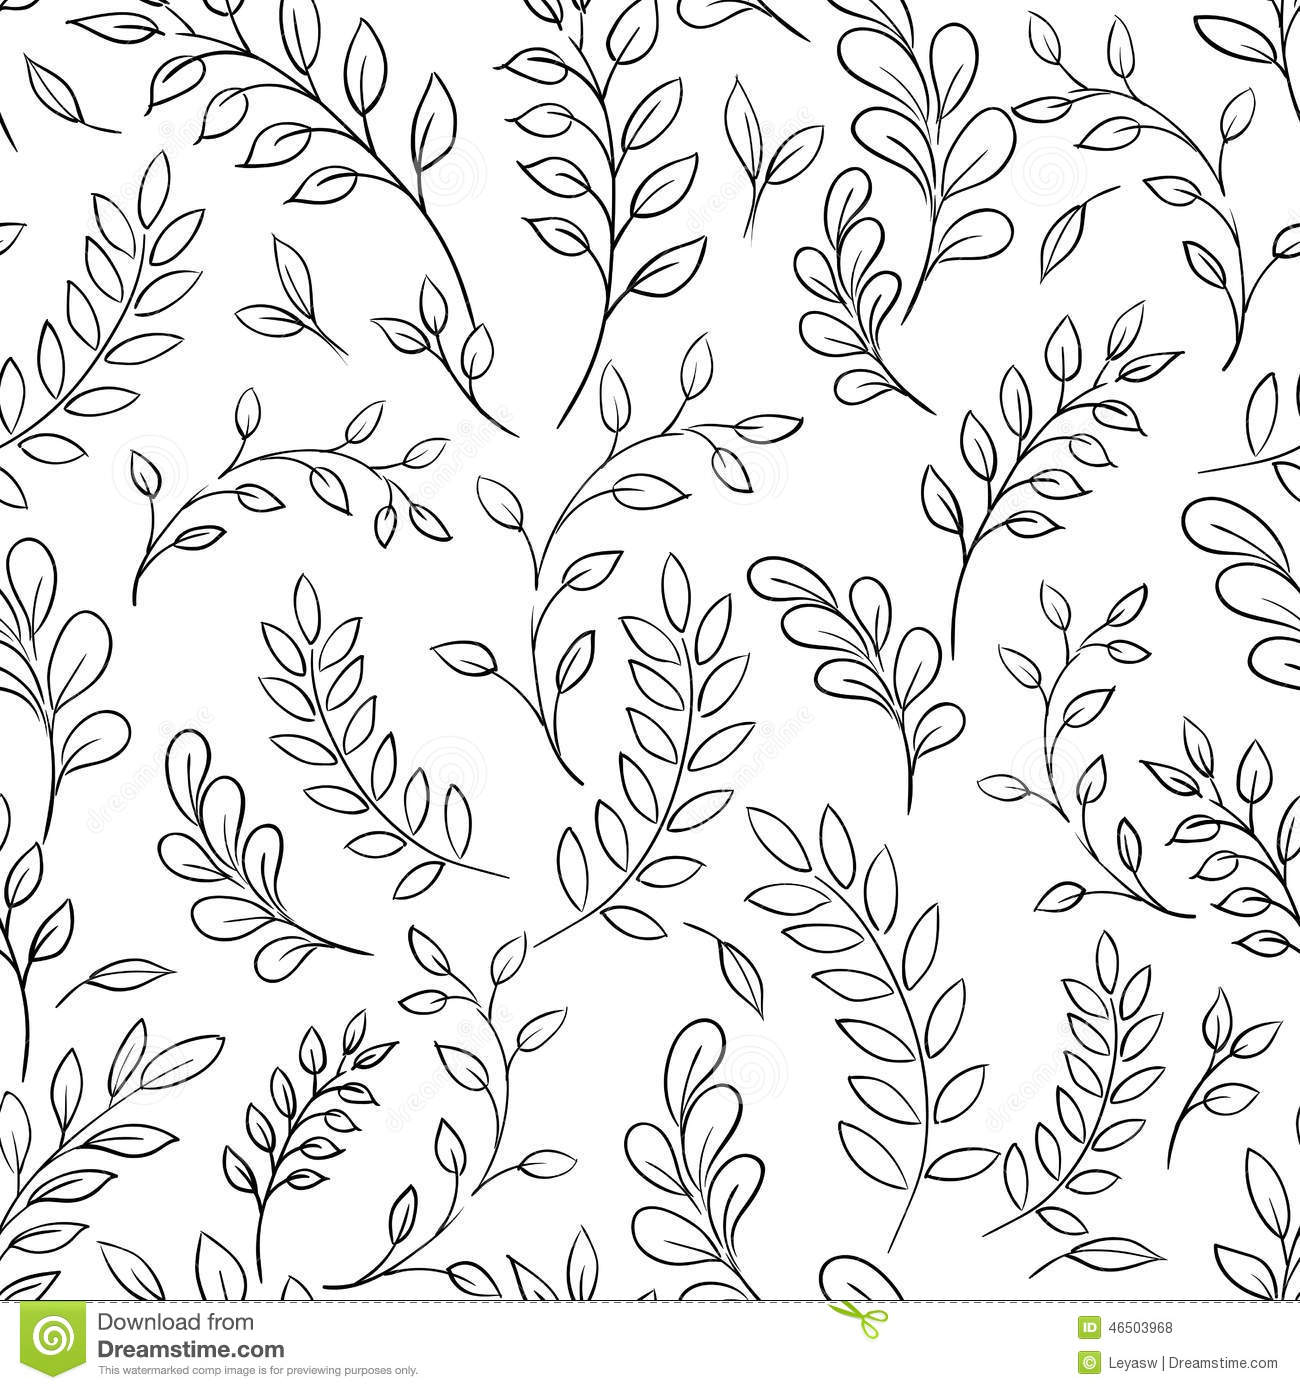 Seamless Leaf Black And White Pattern Stock Vector Illustration